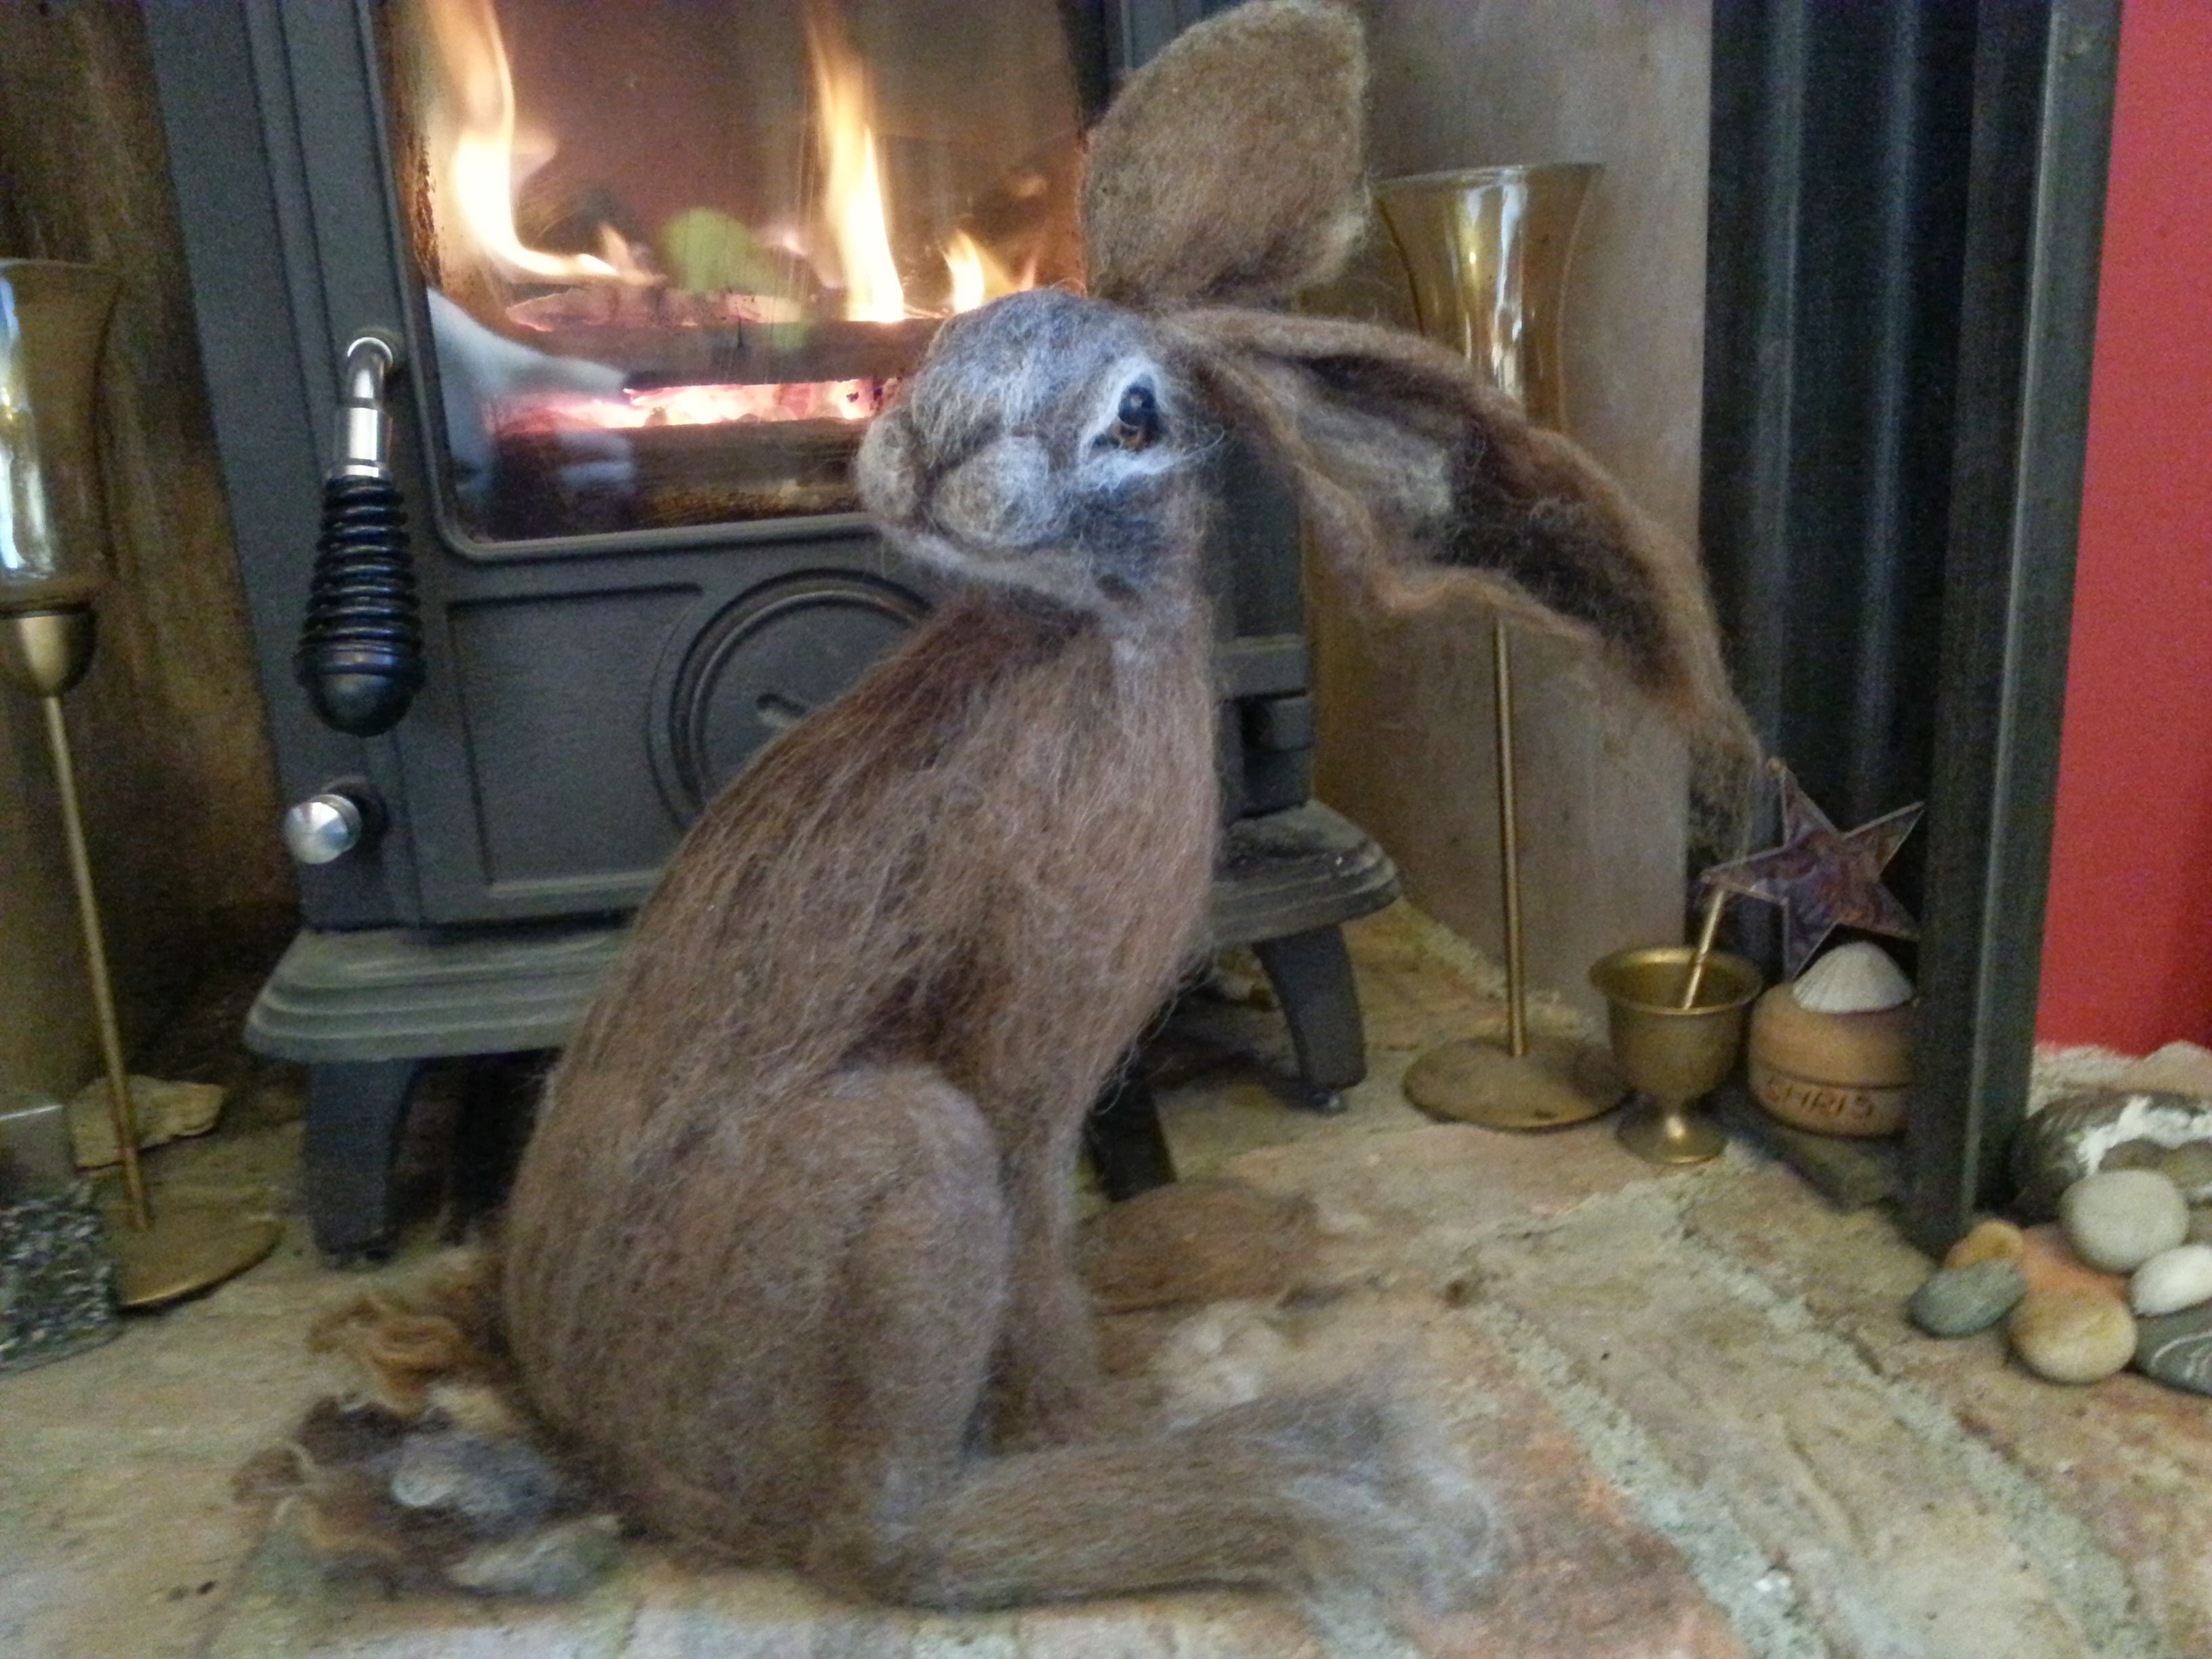 And the hare